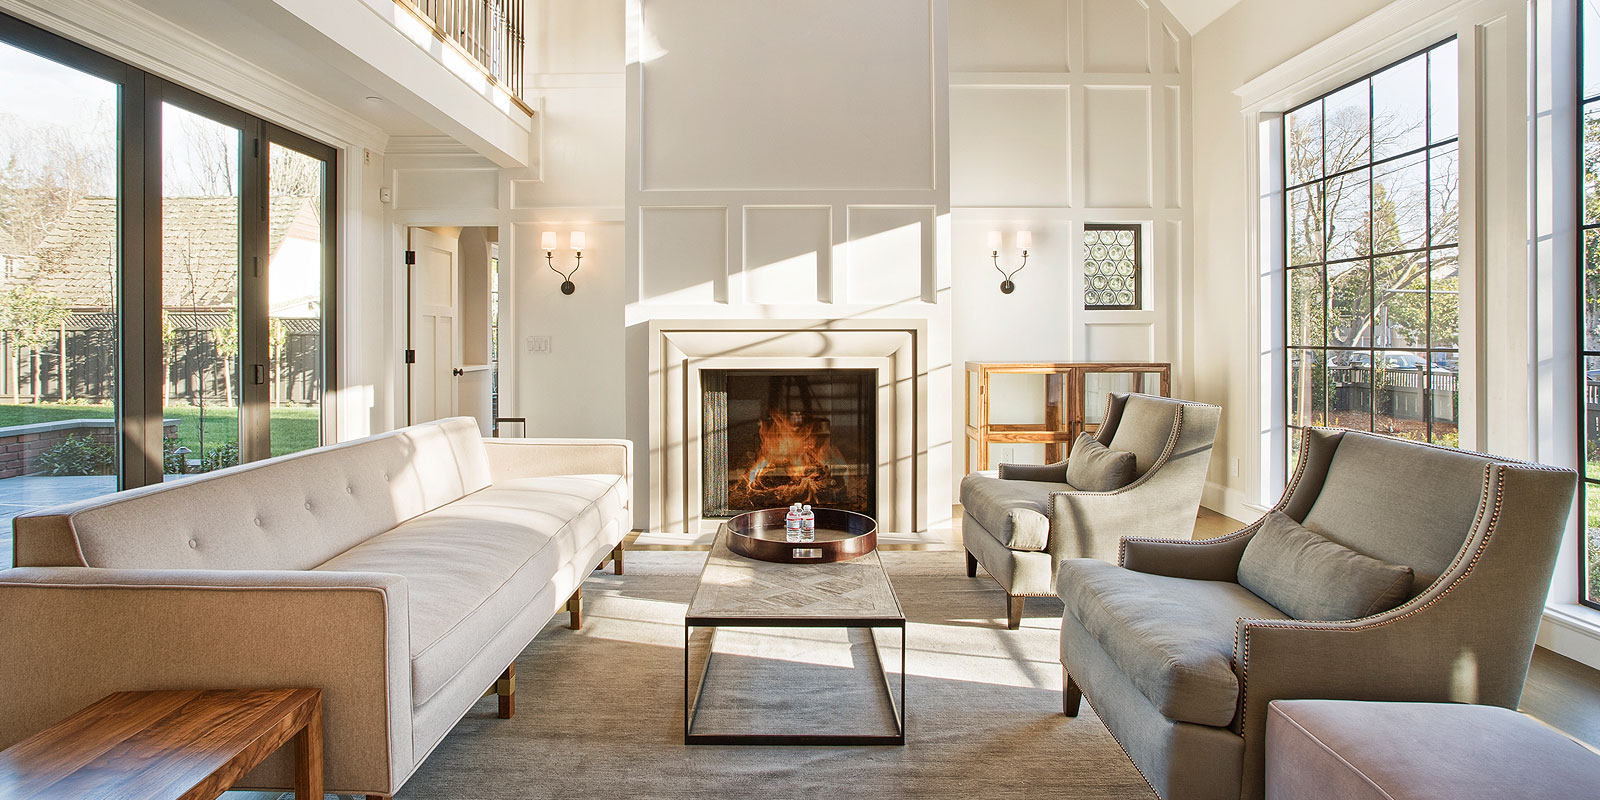 Beautiful living room interior with fireplace in new luxury home